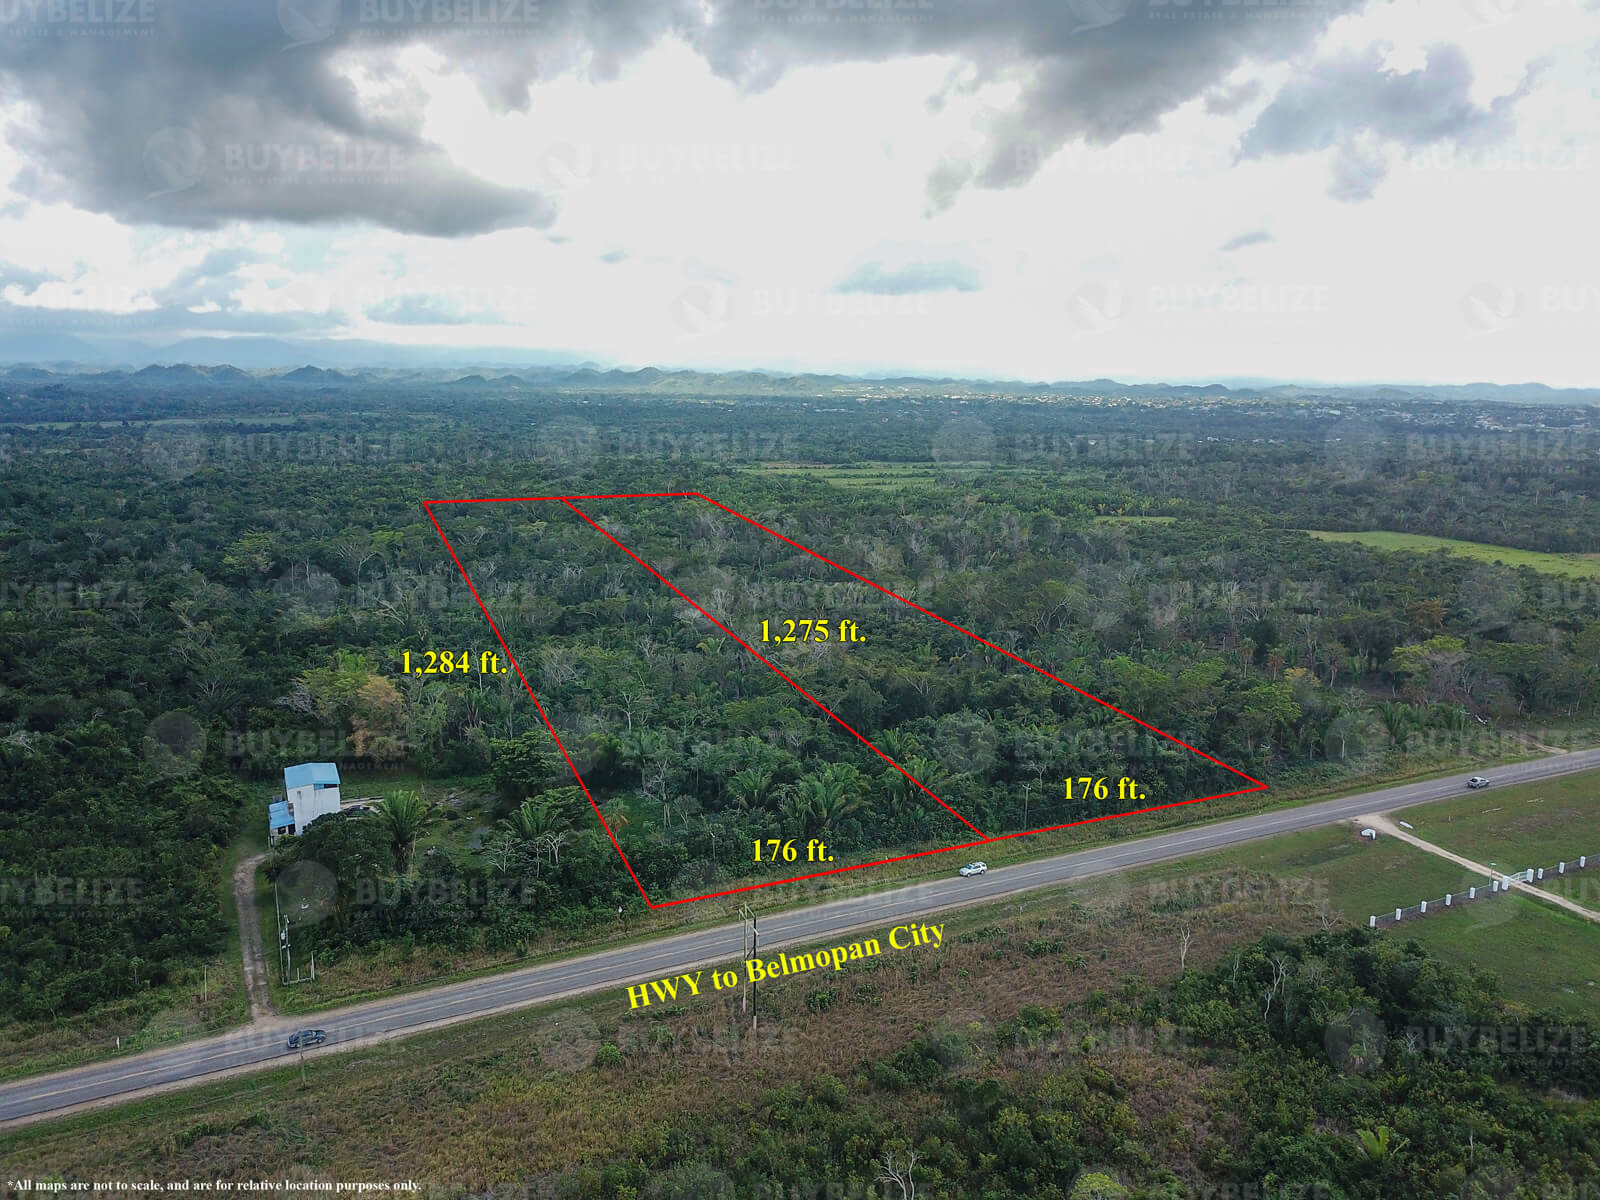 Two 5 acre HWY properties for sale in Belmopan